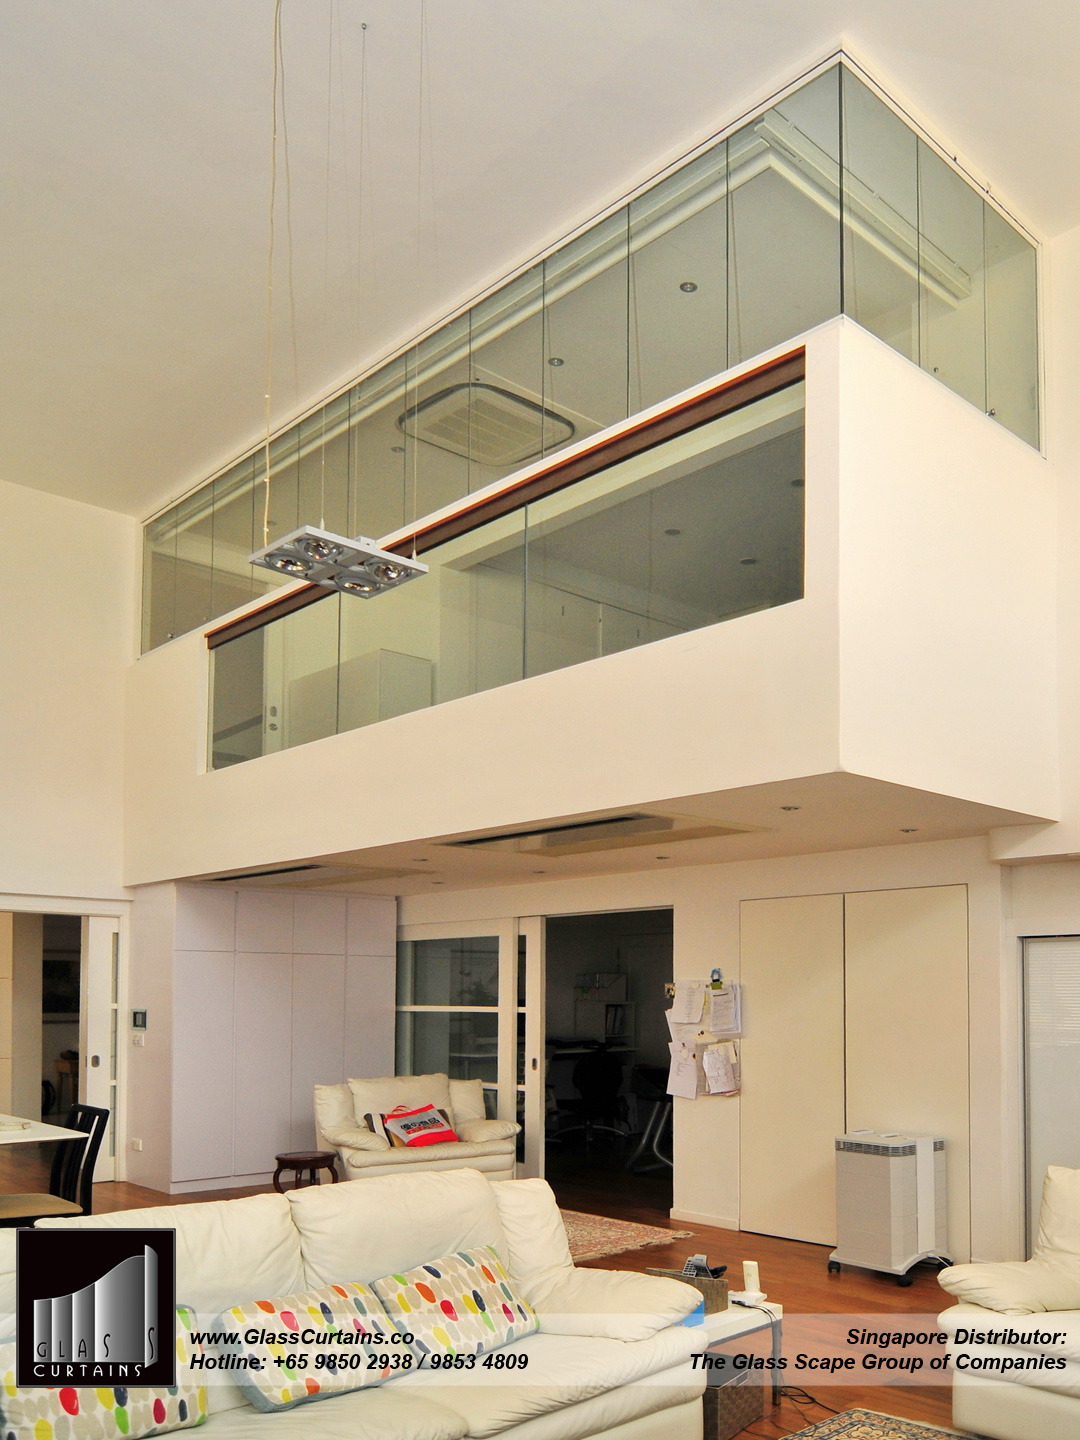 Glass Curtains® in closed position